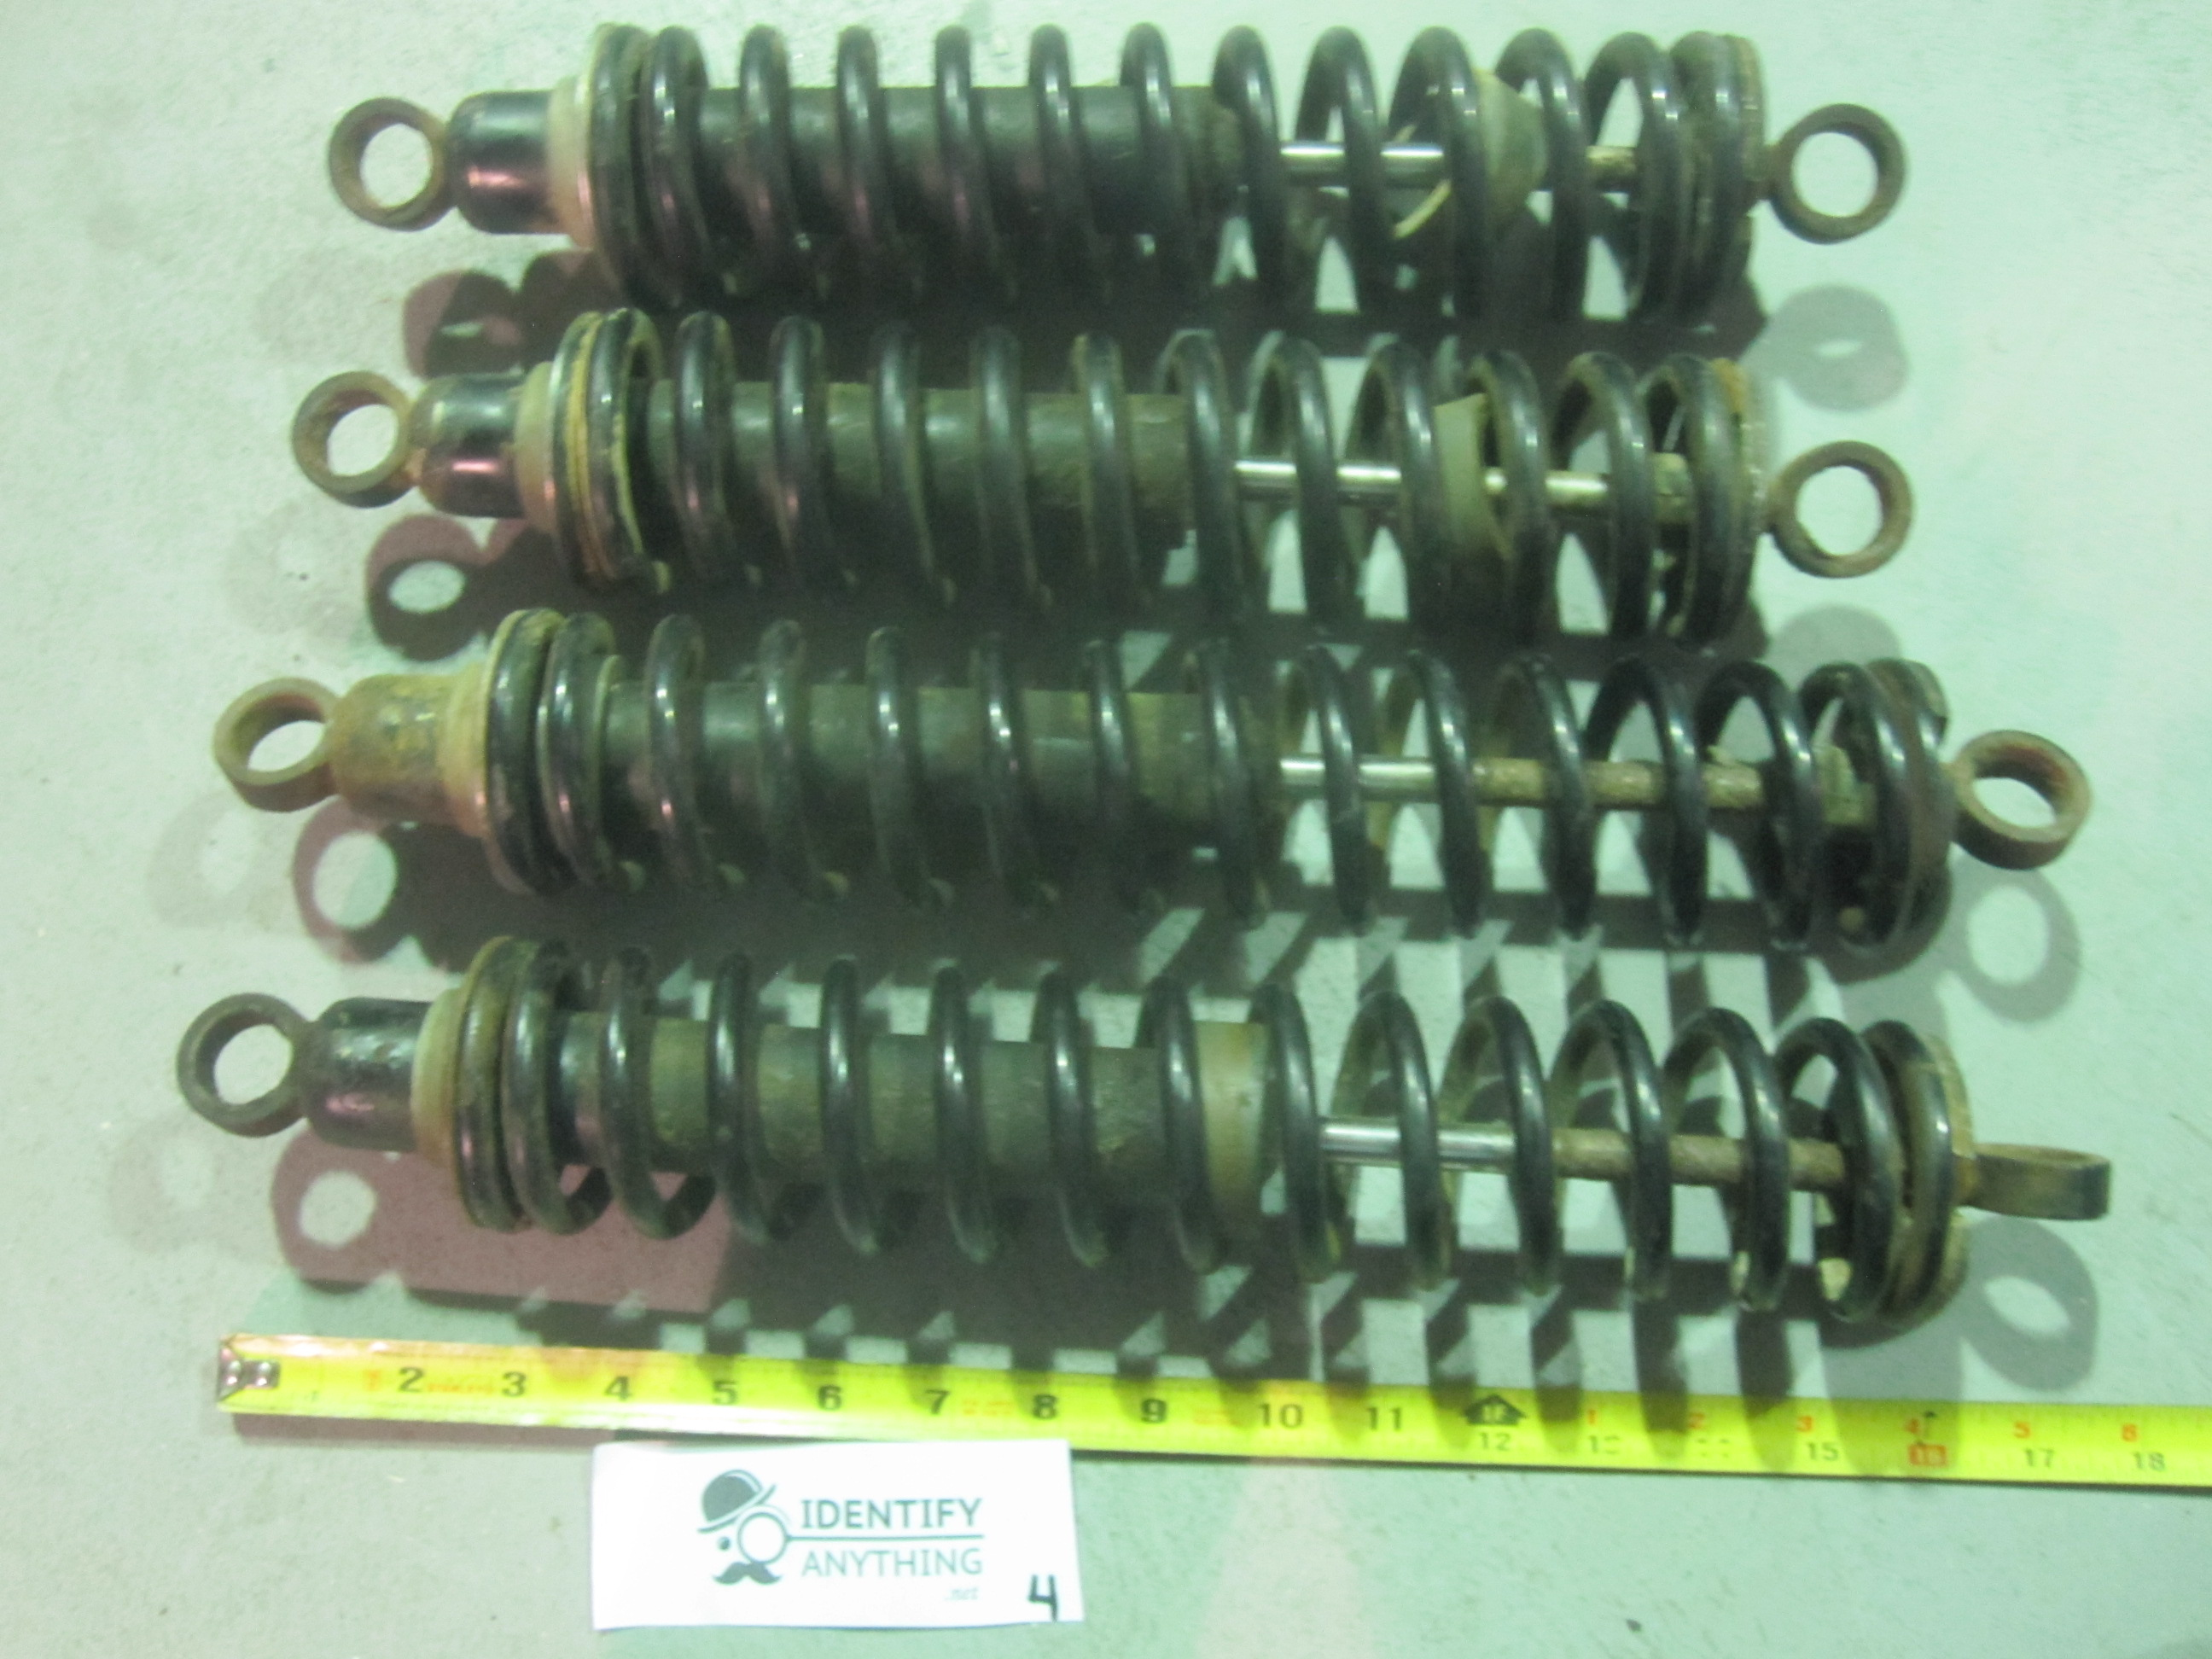 These are shocks for a 1998 Arctic Cat 500 4x4 ATV quad  The